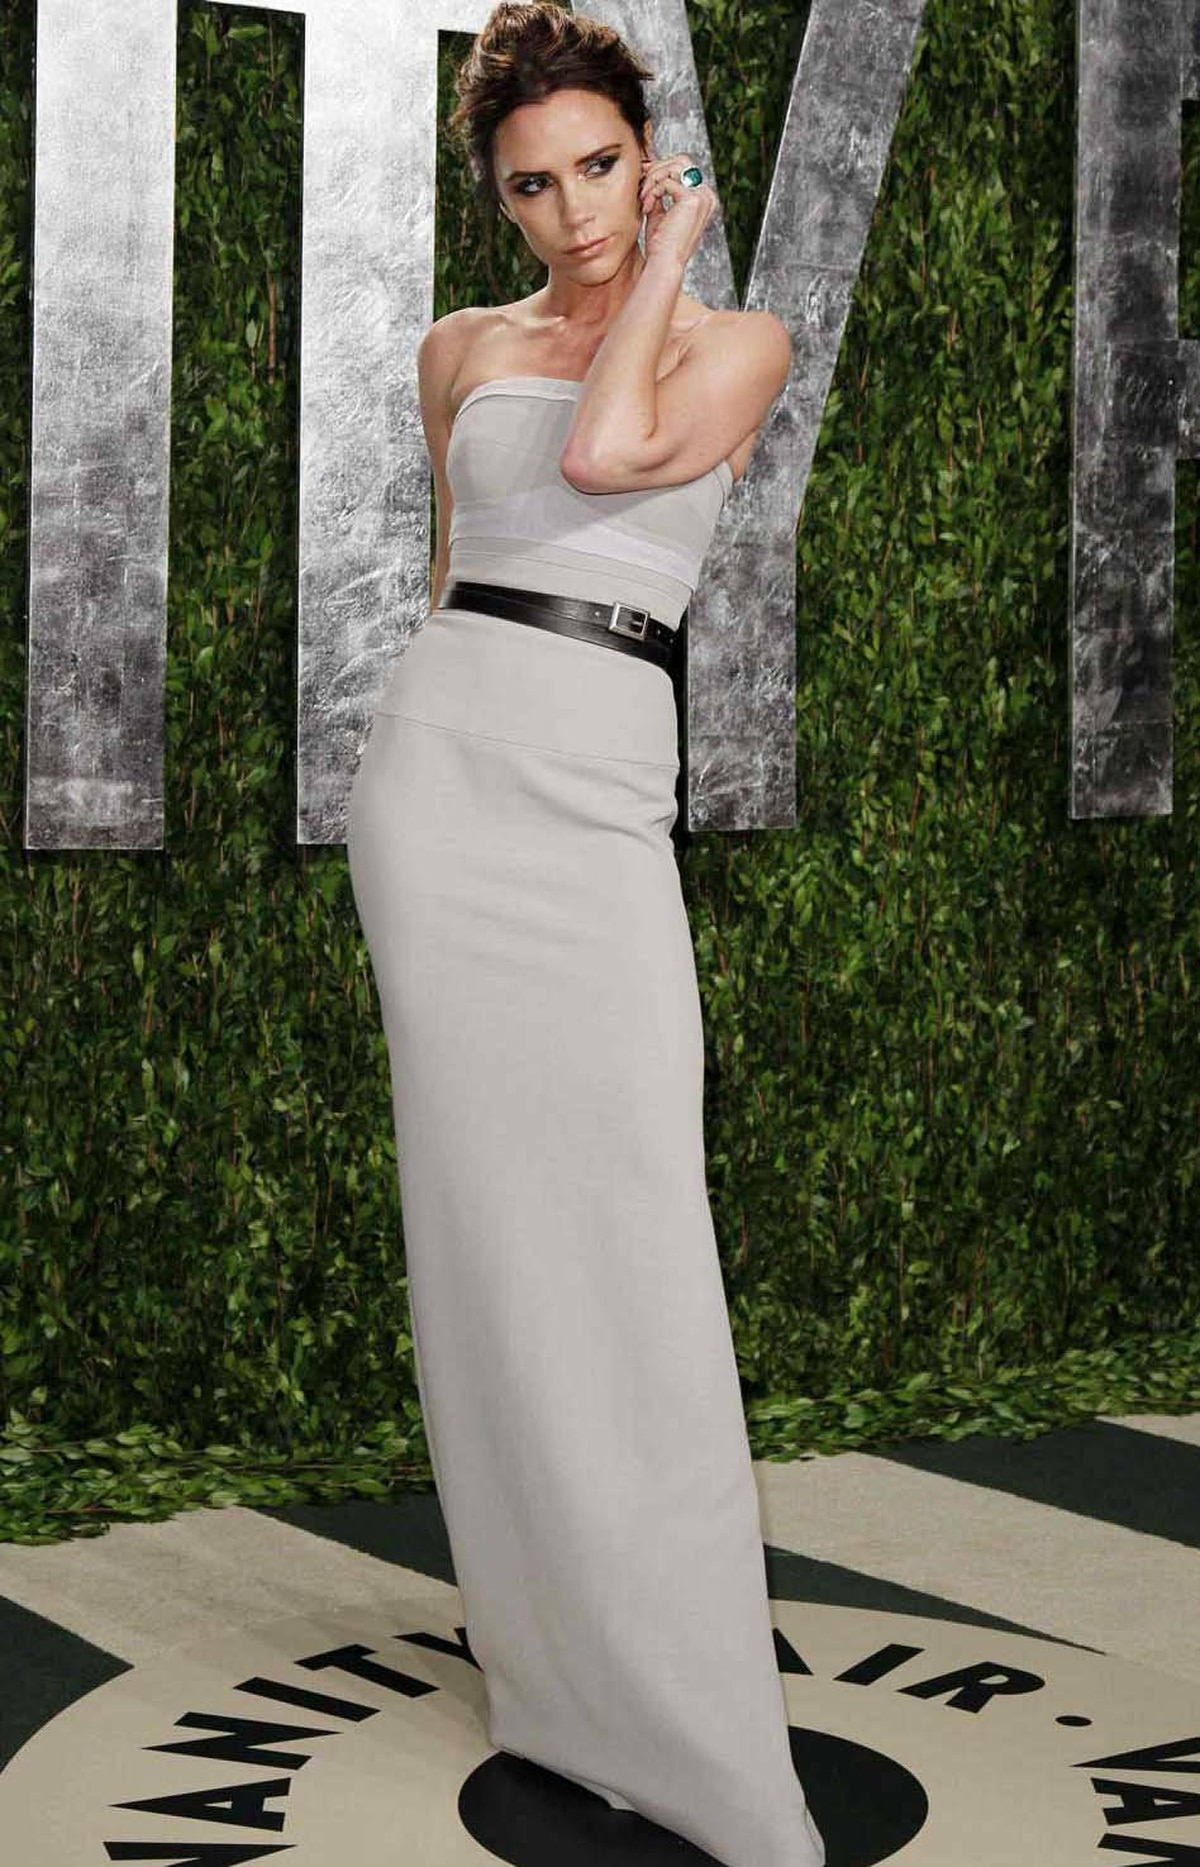 Victoria Beckham wears a silly expression at the Vanity Fair Oscar party in West Hollywood on Sunday.